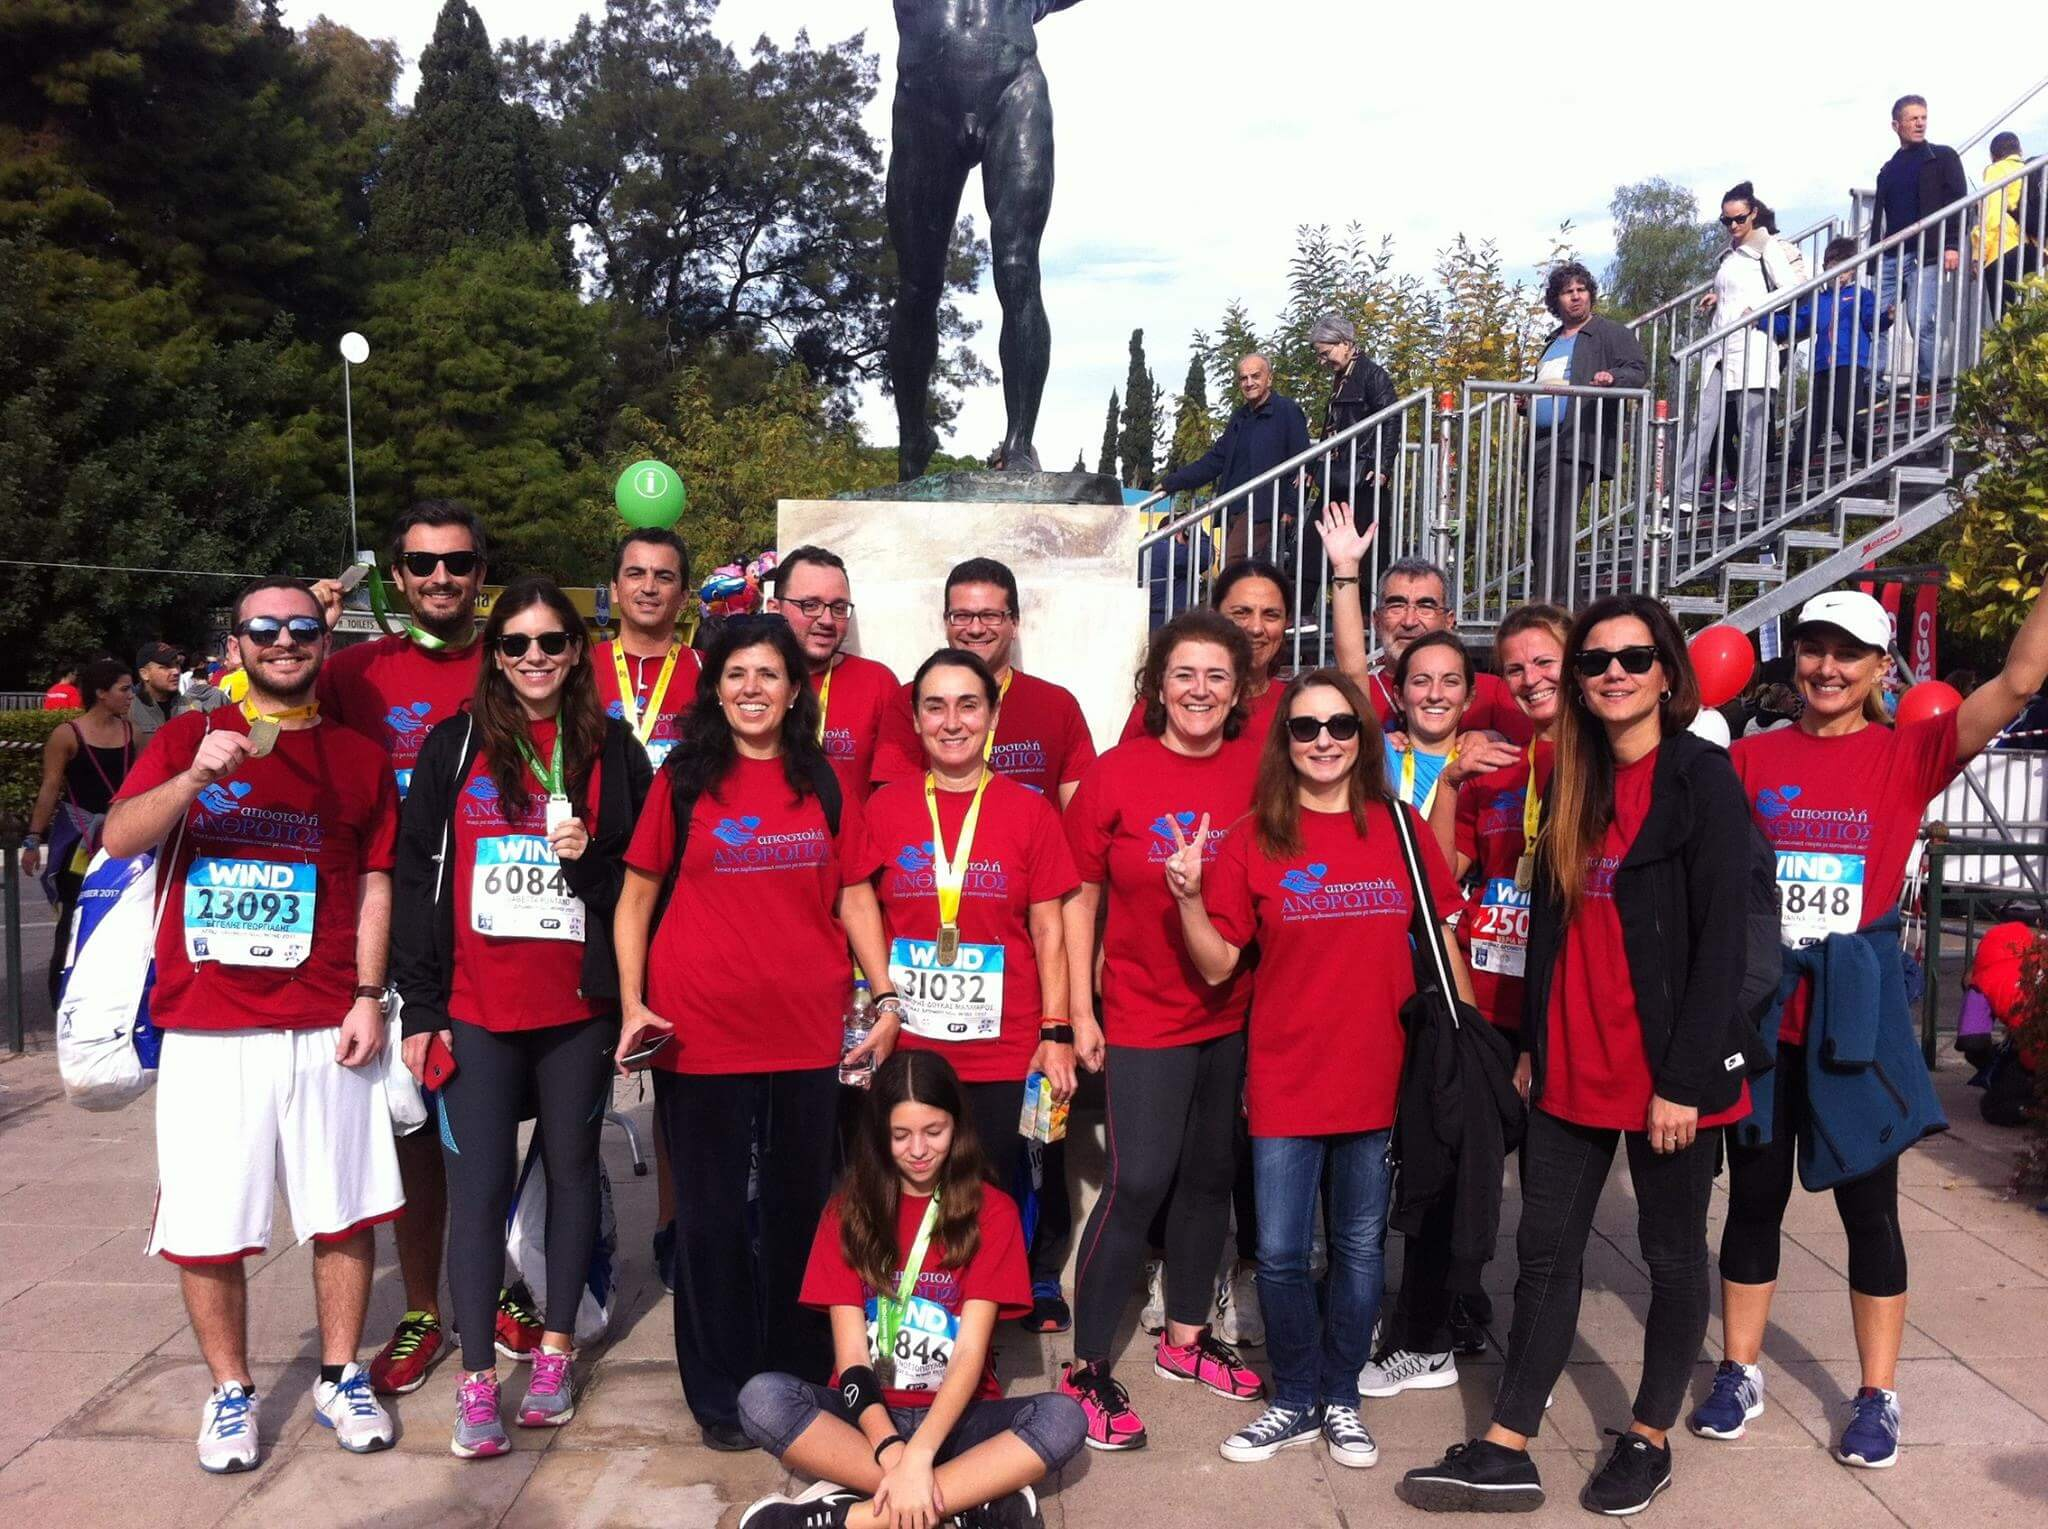 We run in the Athens Classic Marathon